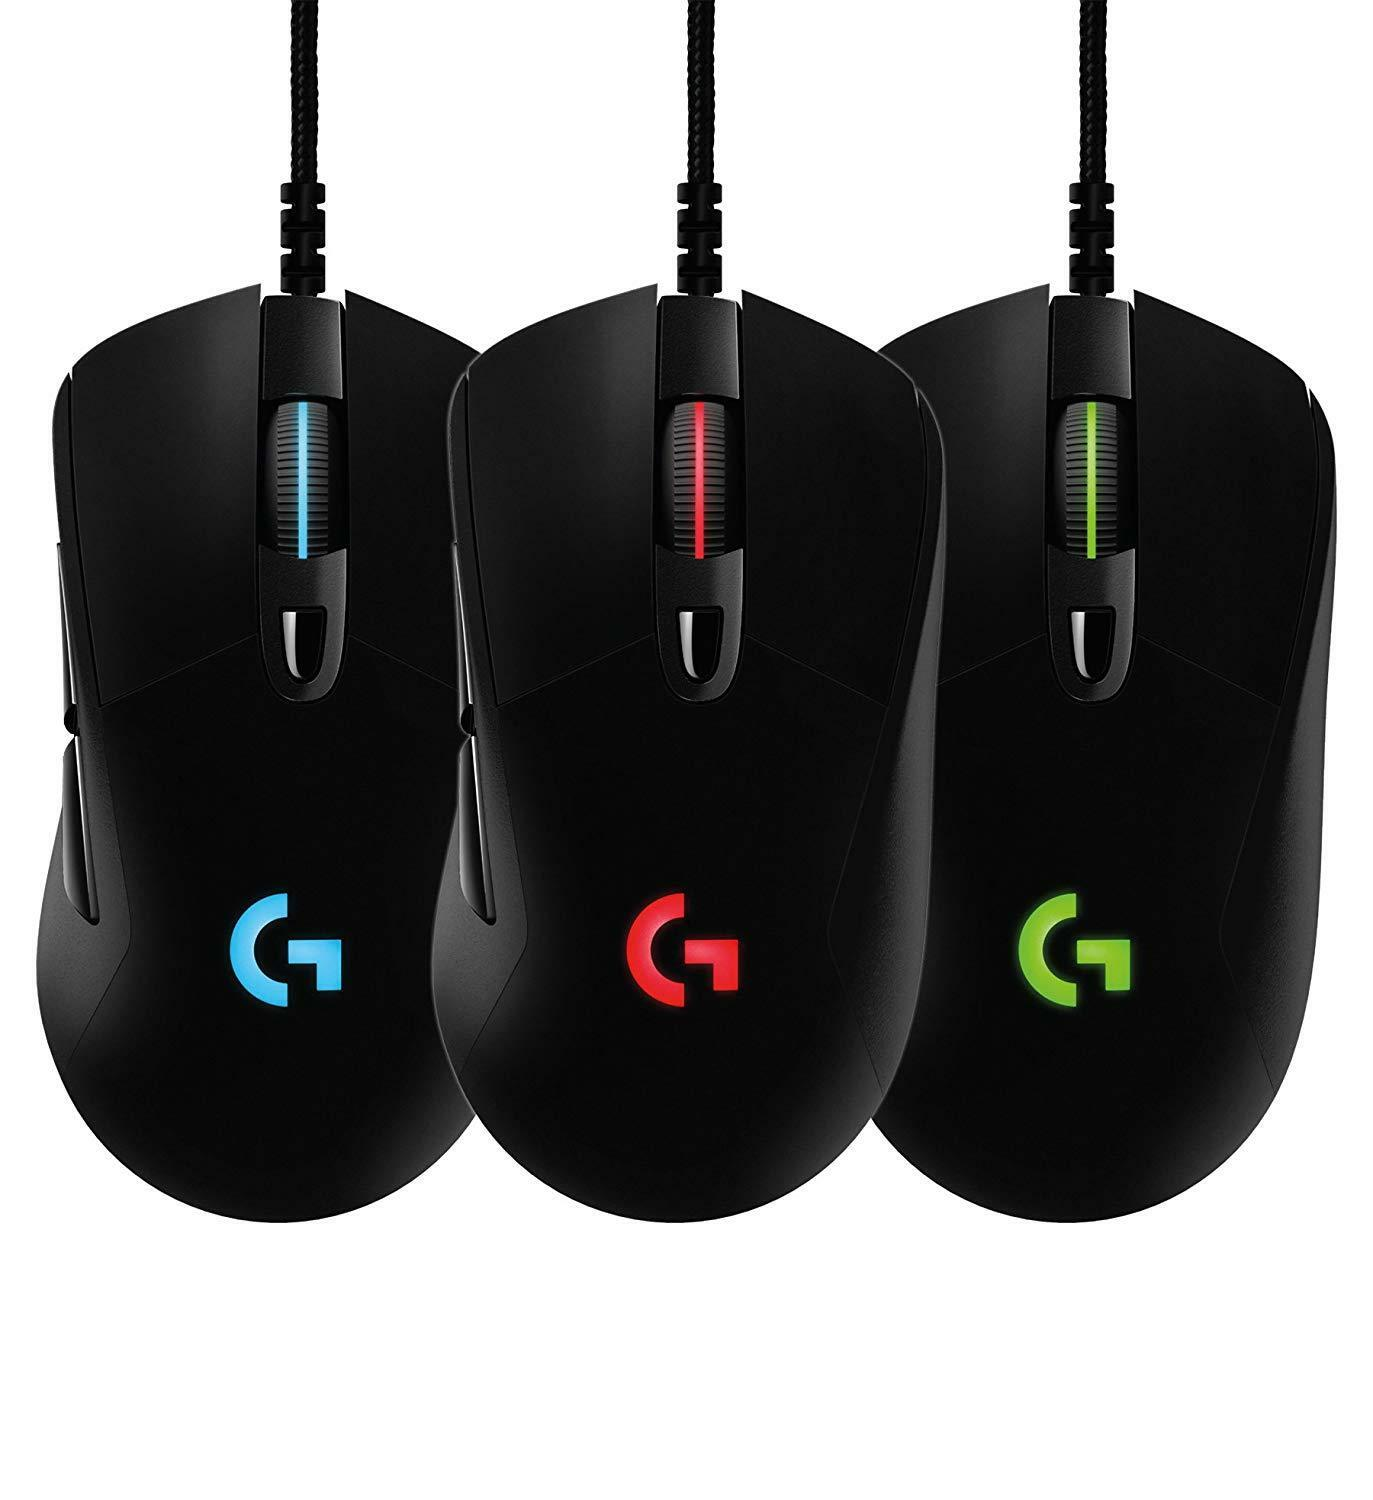 3762e957c3c LOGITECH G403 Prodigy WIRELESS Gaming Mouse 12000 DPI Optical RGB A ...